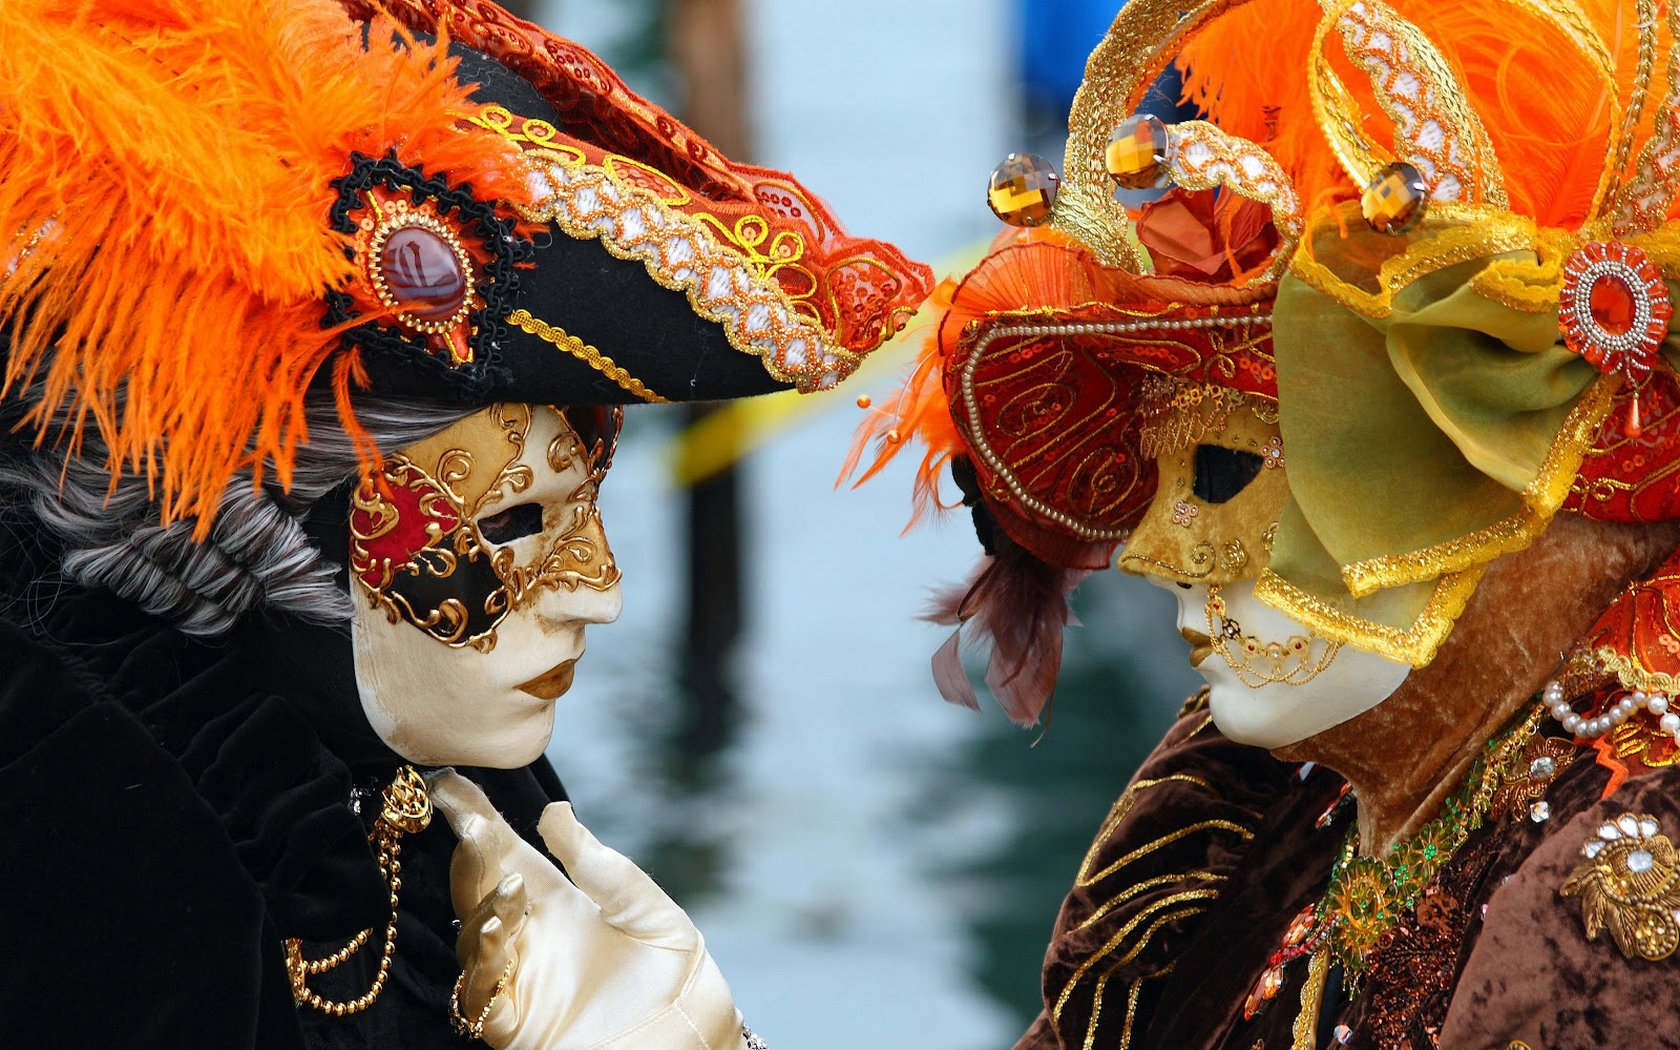 Desktop Wallpaper Speciale Carnevale 2014